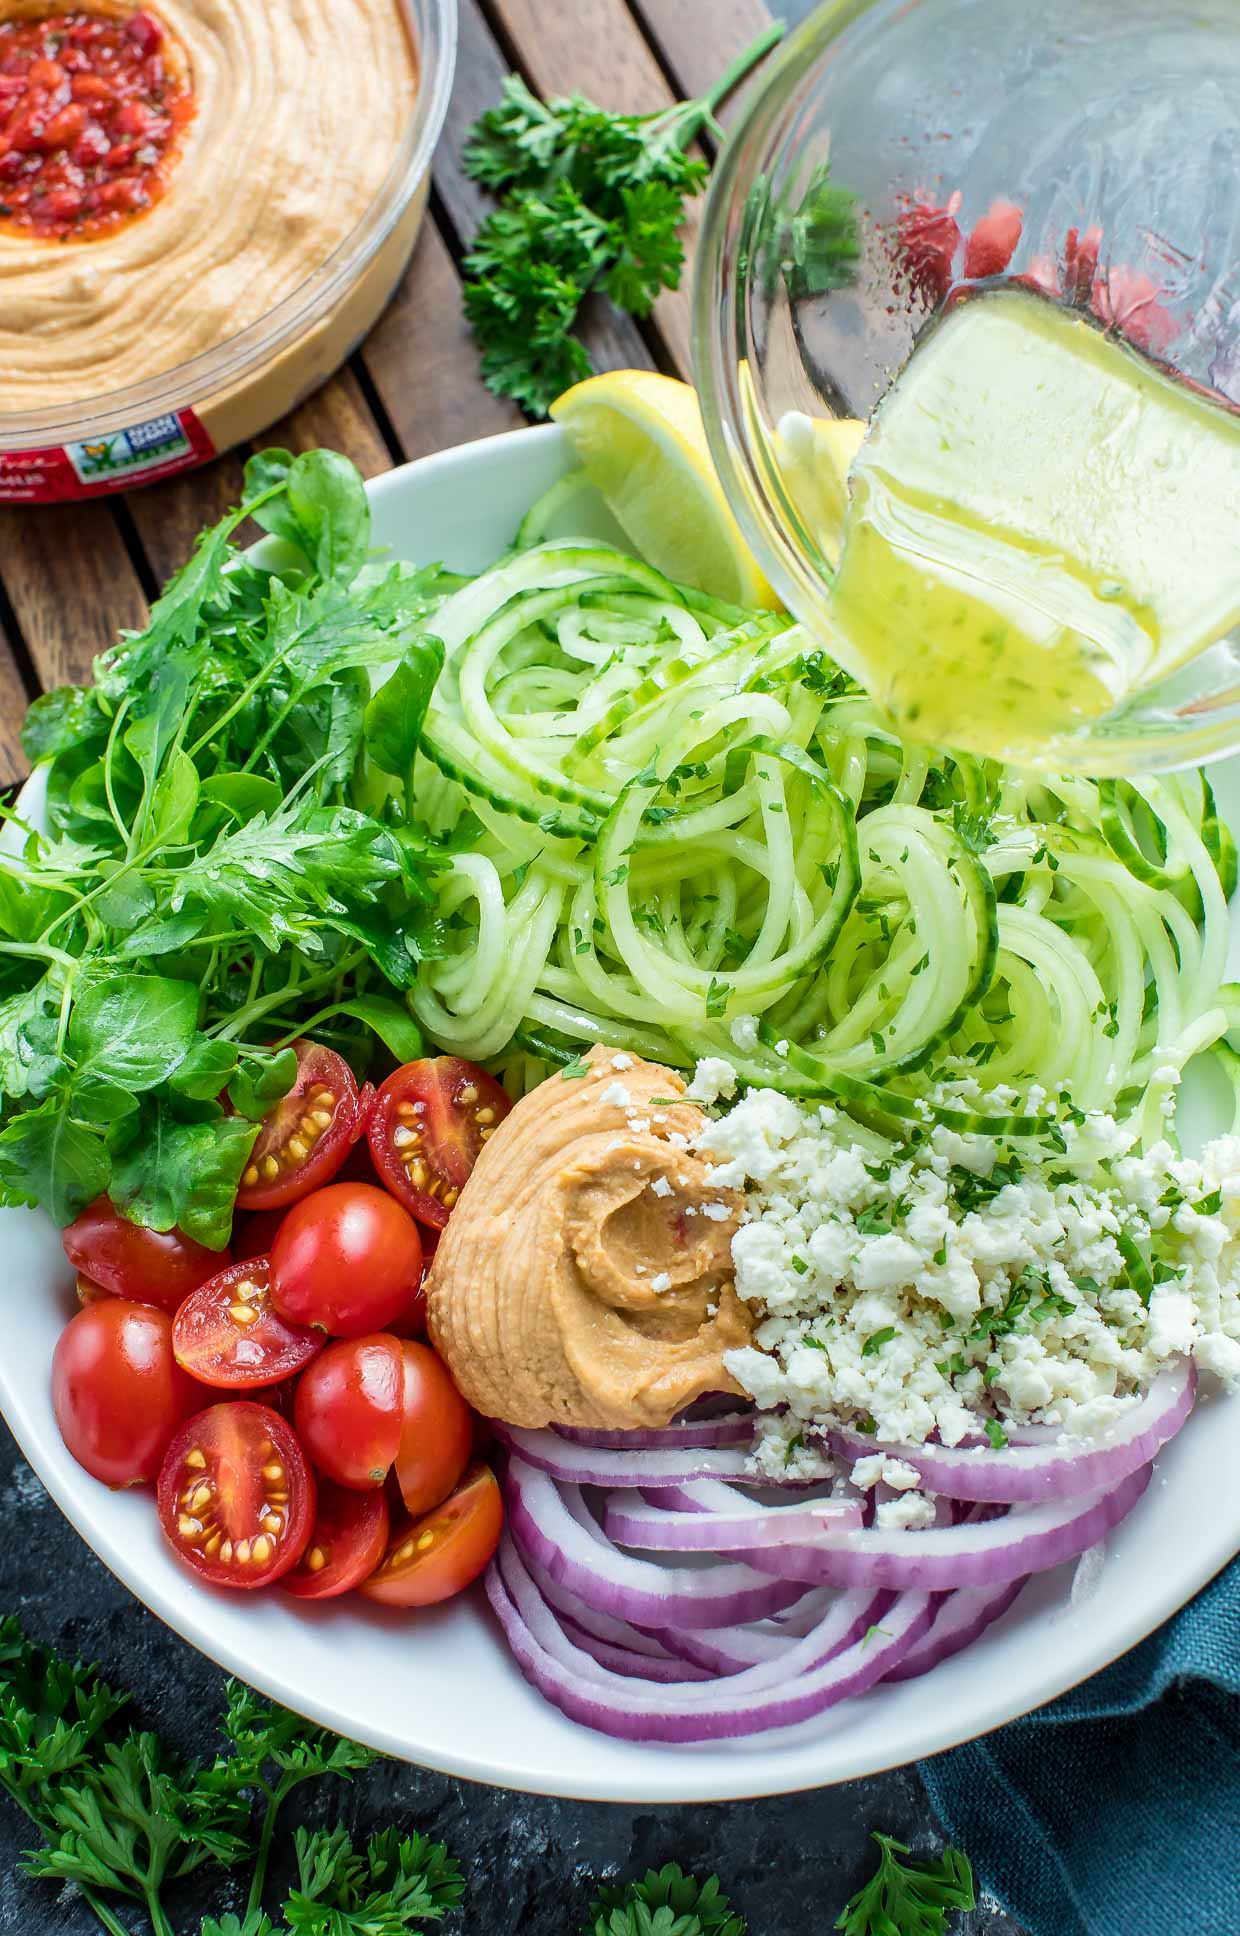 This Greek Spiralized Cucumber Salad features cucumber noodles for a sassy spiralized salad that's refreshing and delicious!